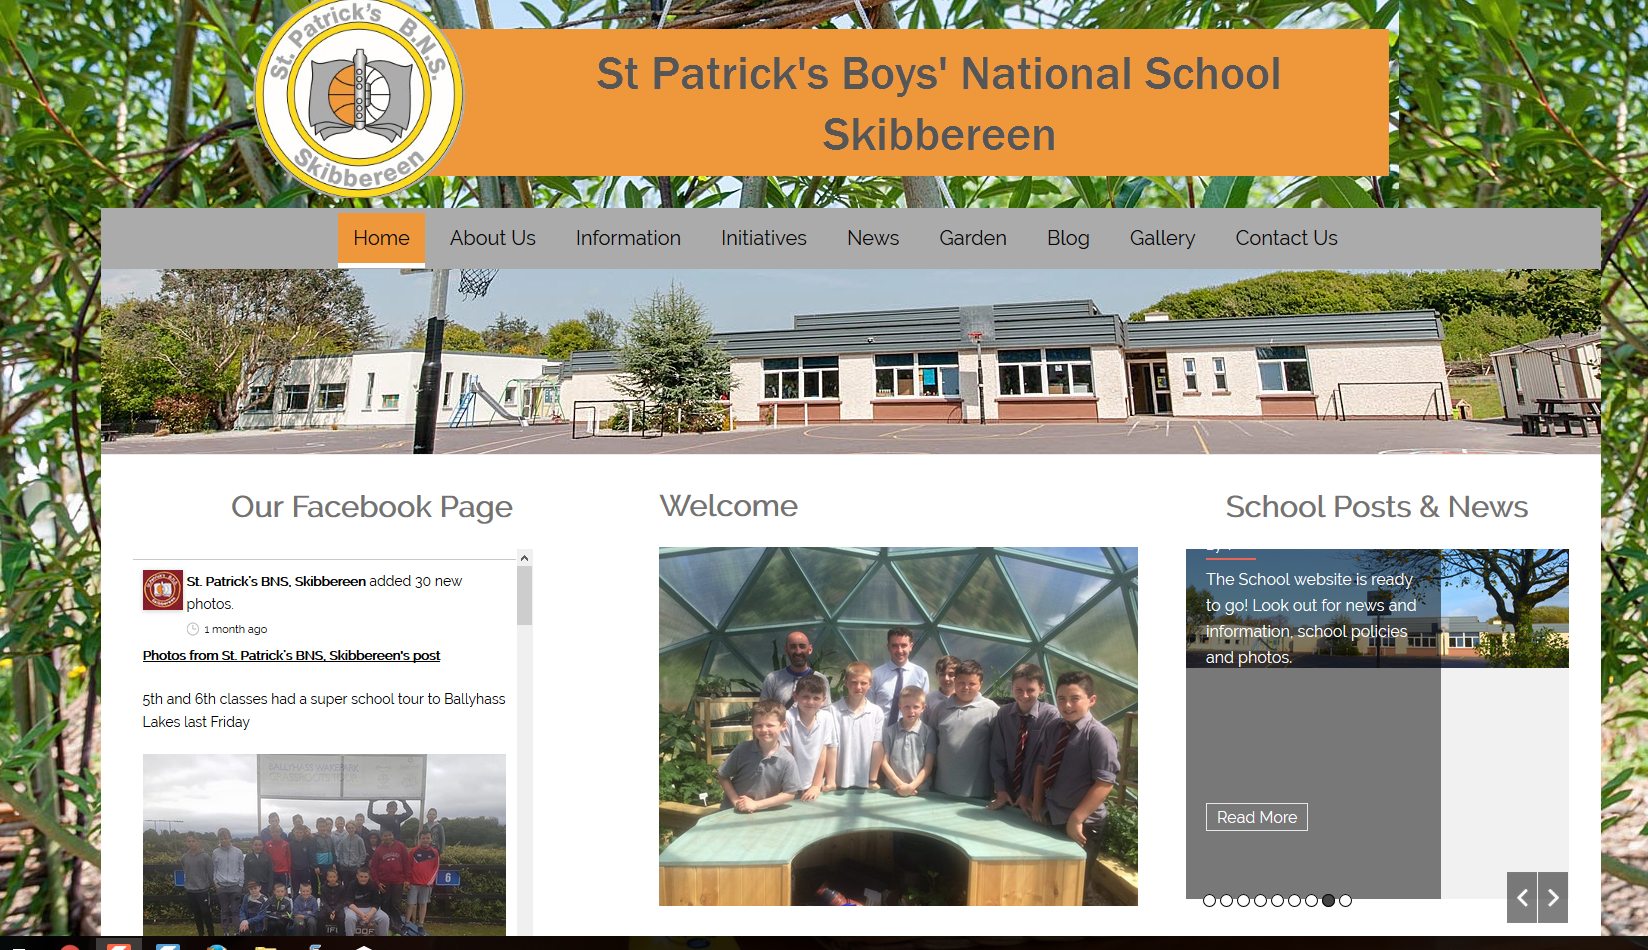 School website launched